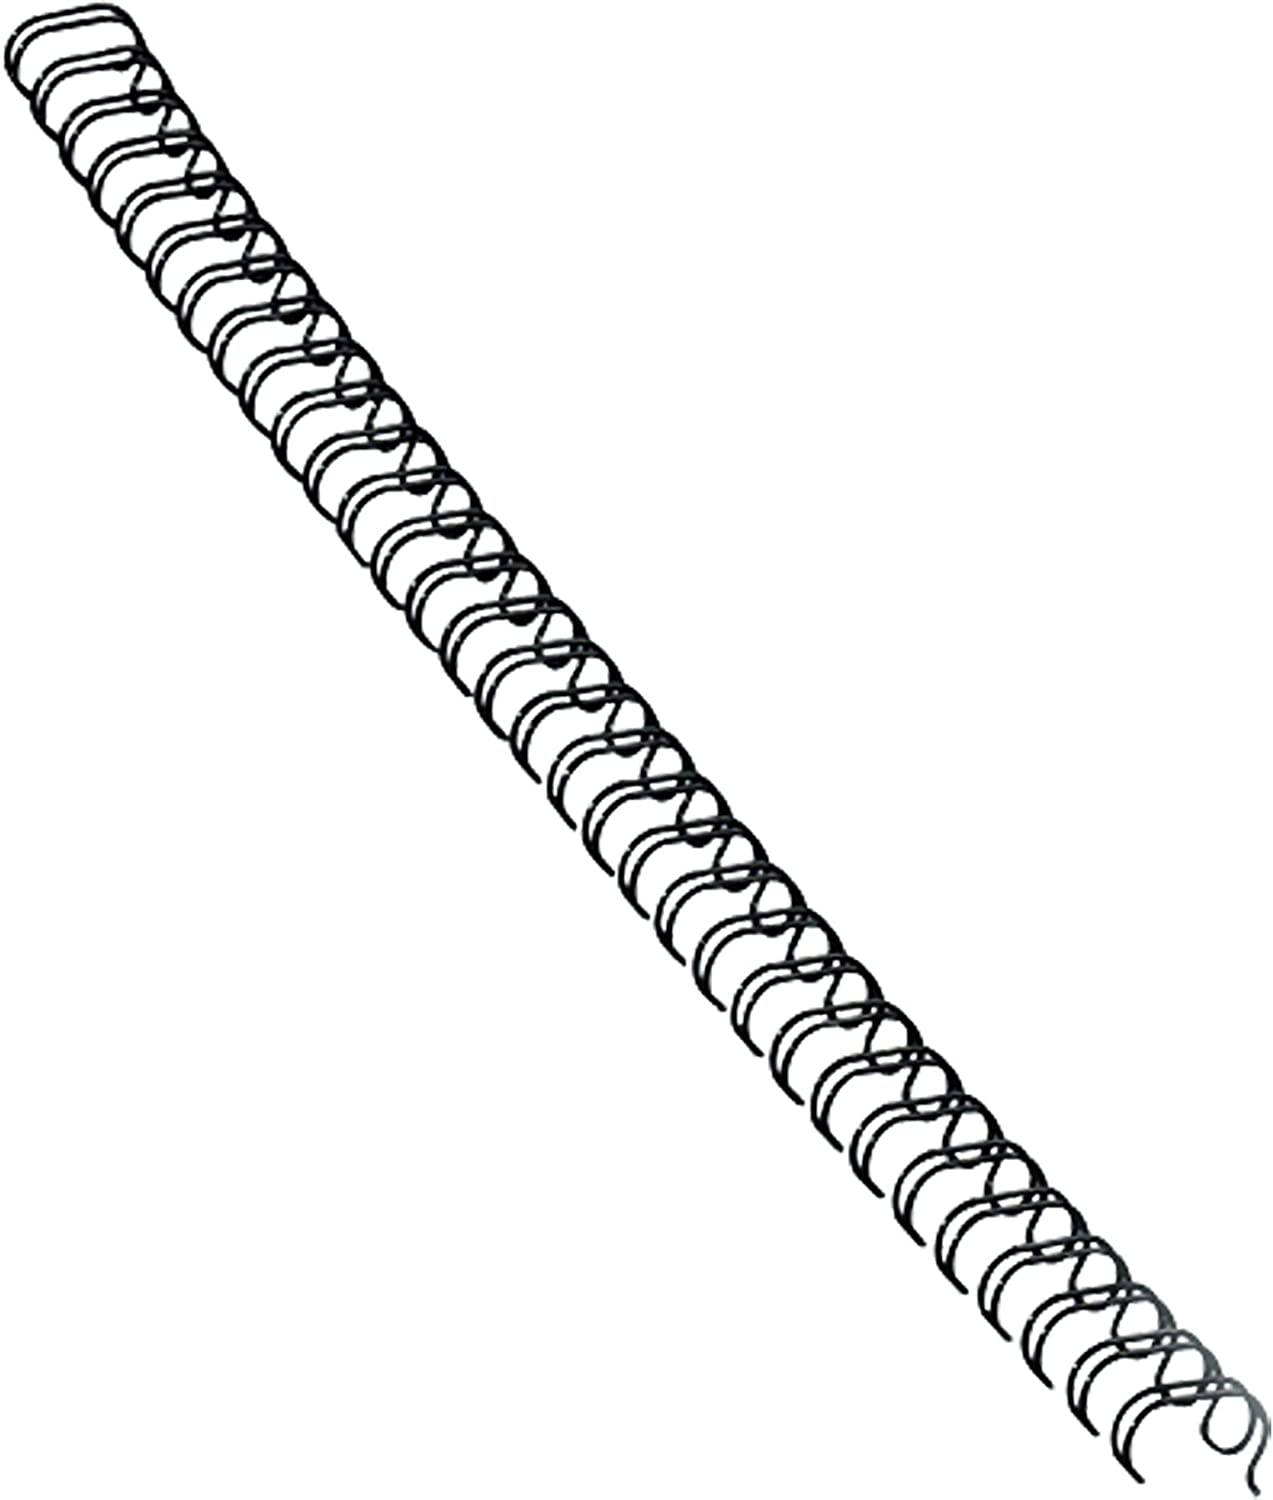 "Fellowes Wire Binding Spines, 9/16"", Holds 130 Sheets, Black, 25 Pack (5255601)"